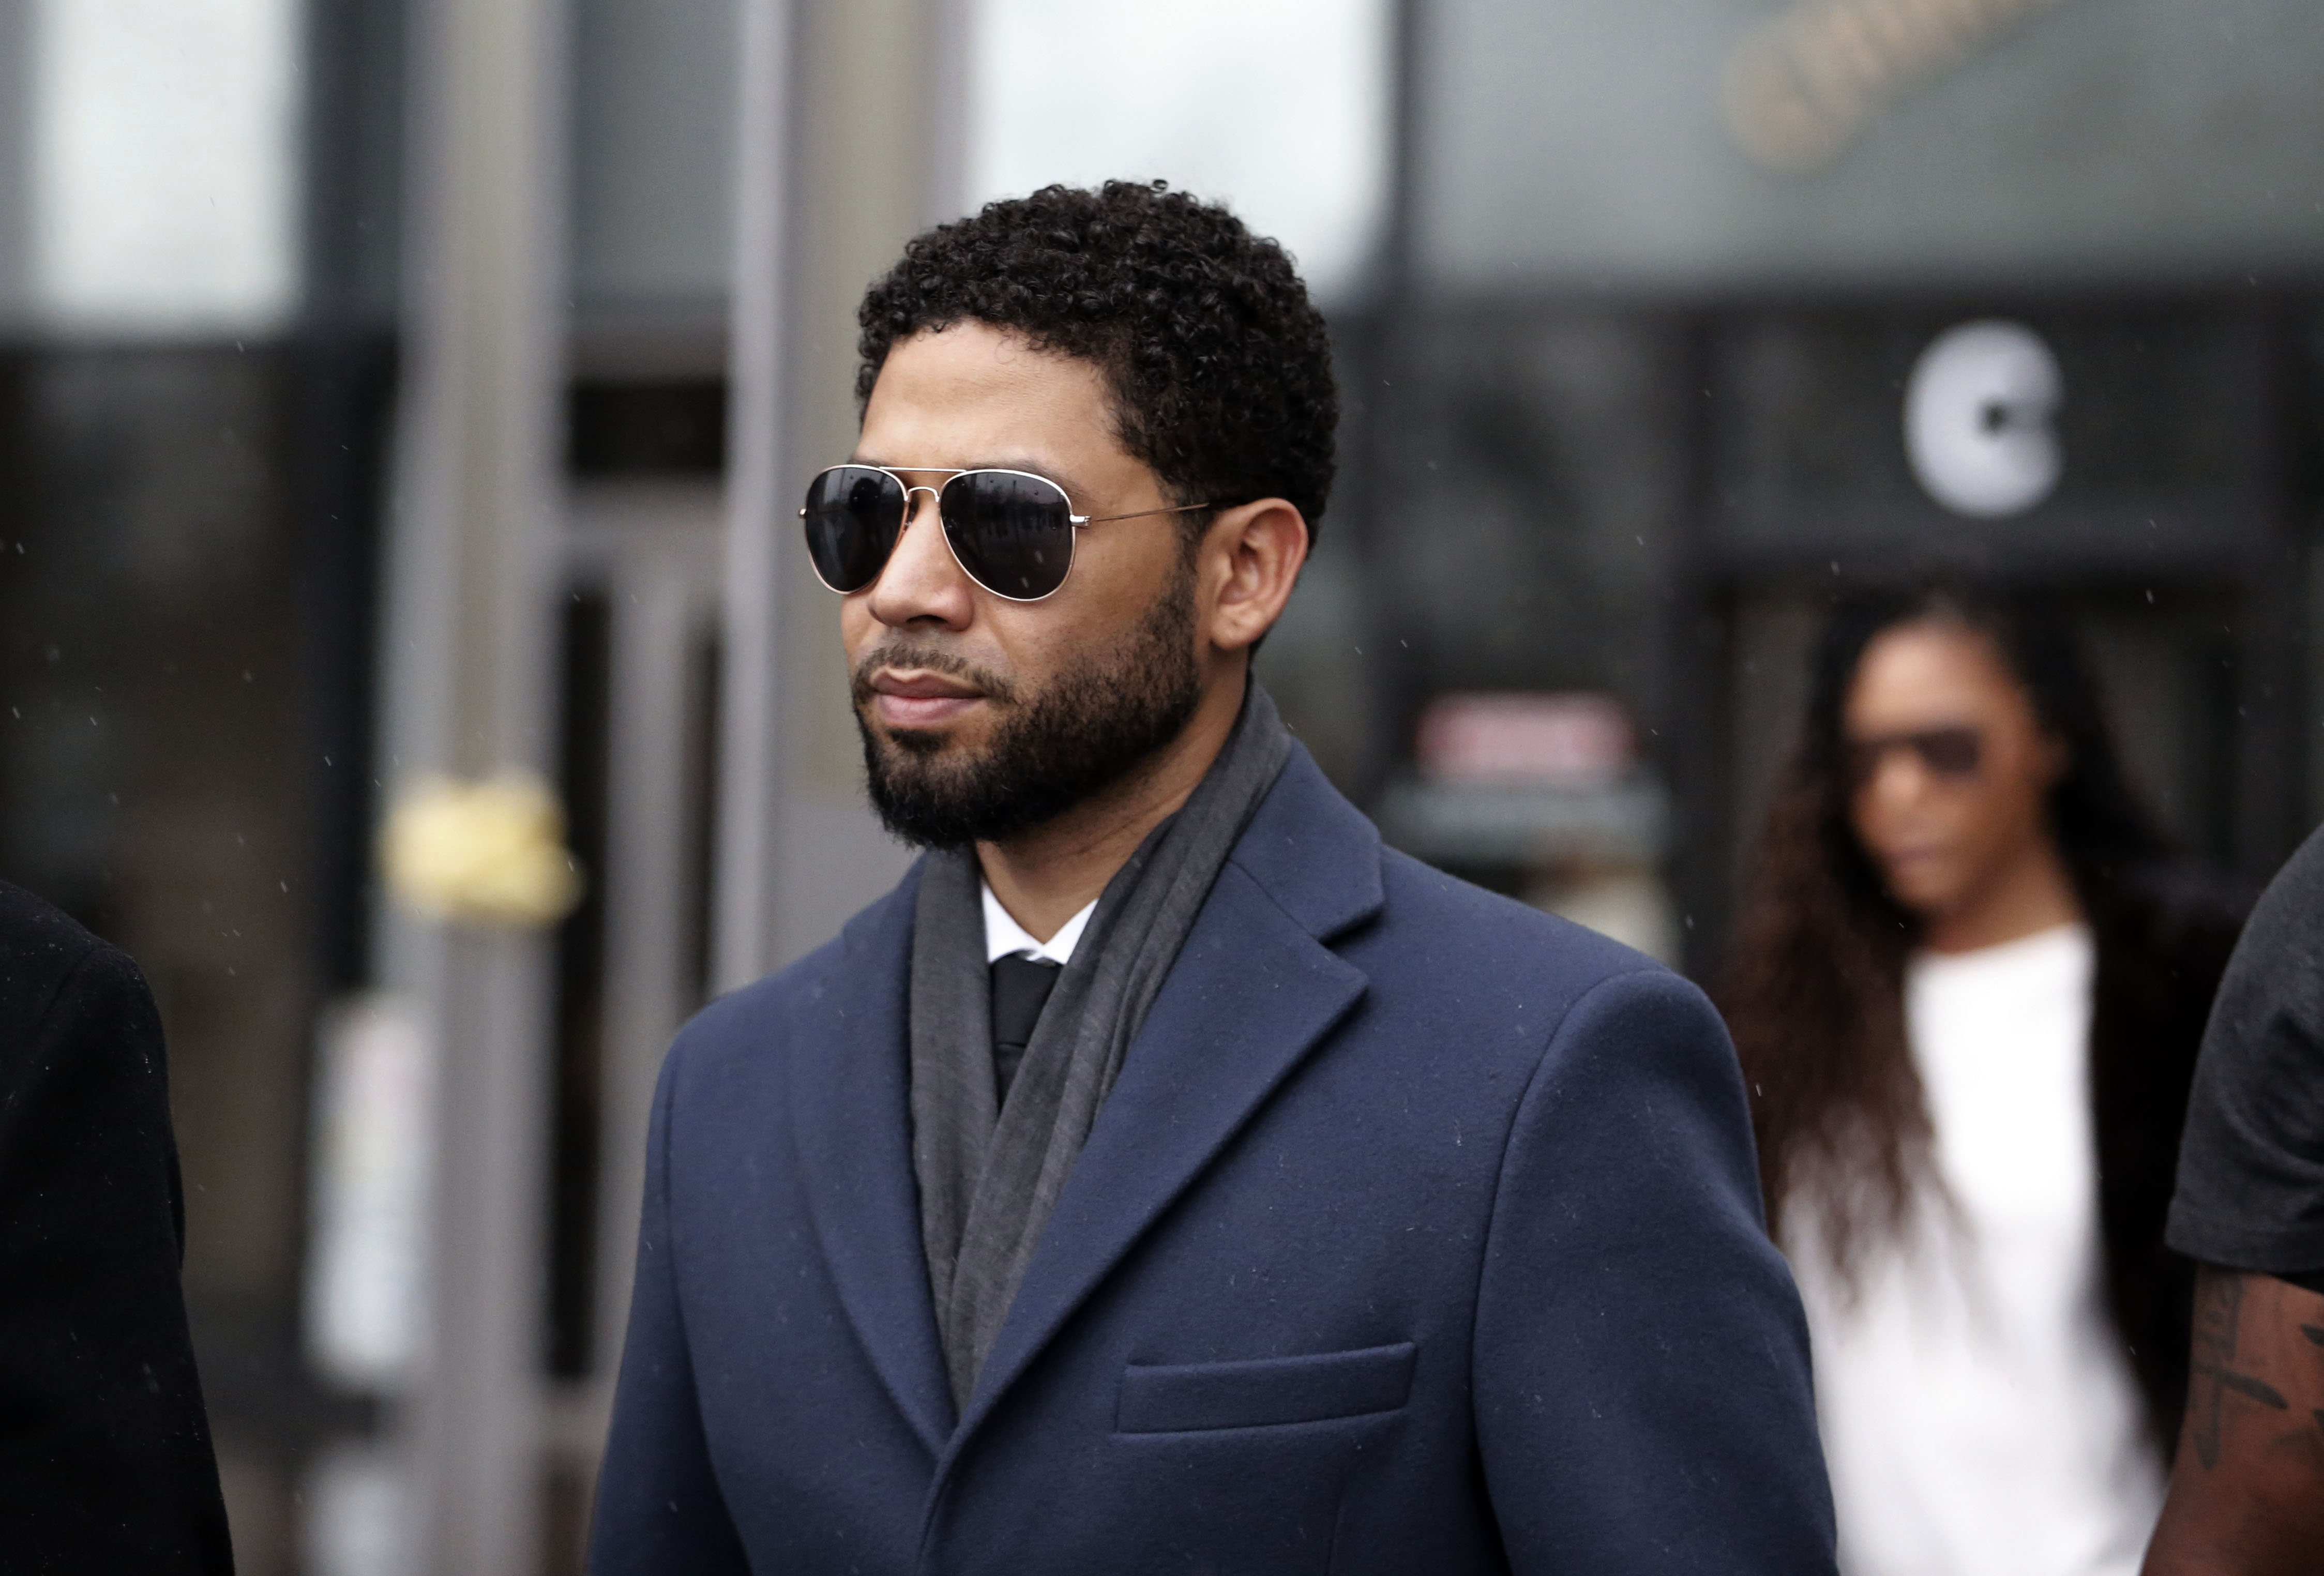 Jussie Smollett leaving Lieghton Criminal Courthouse in March 2019 in the midst of accusations of him staging his own attack.  | Source: Getty Images